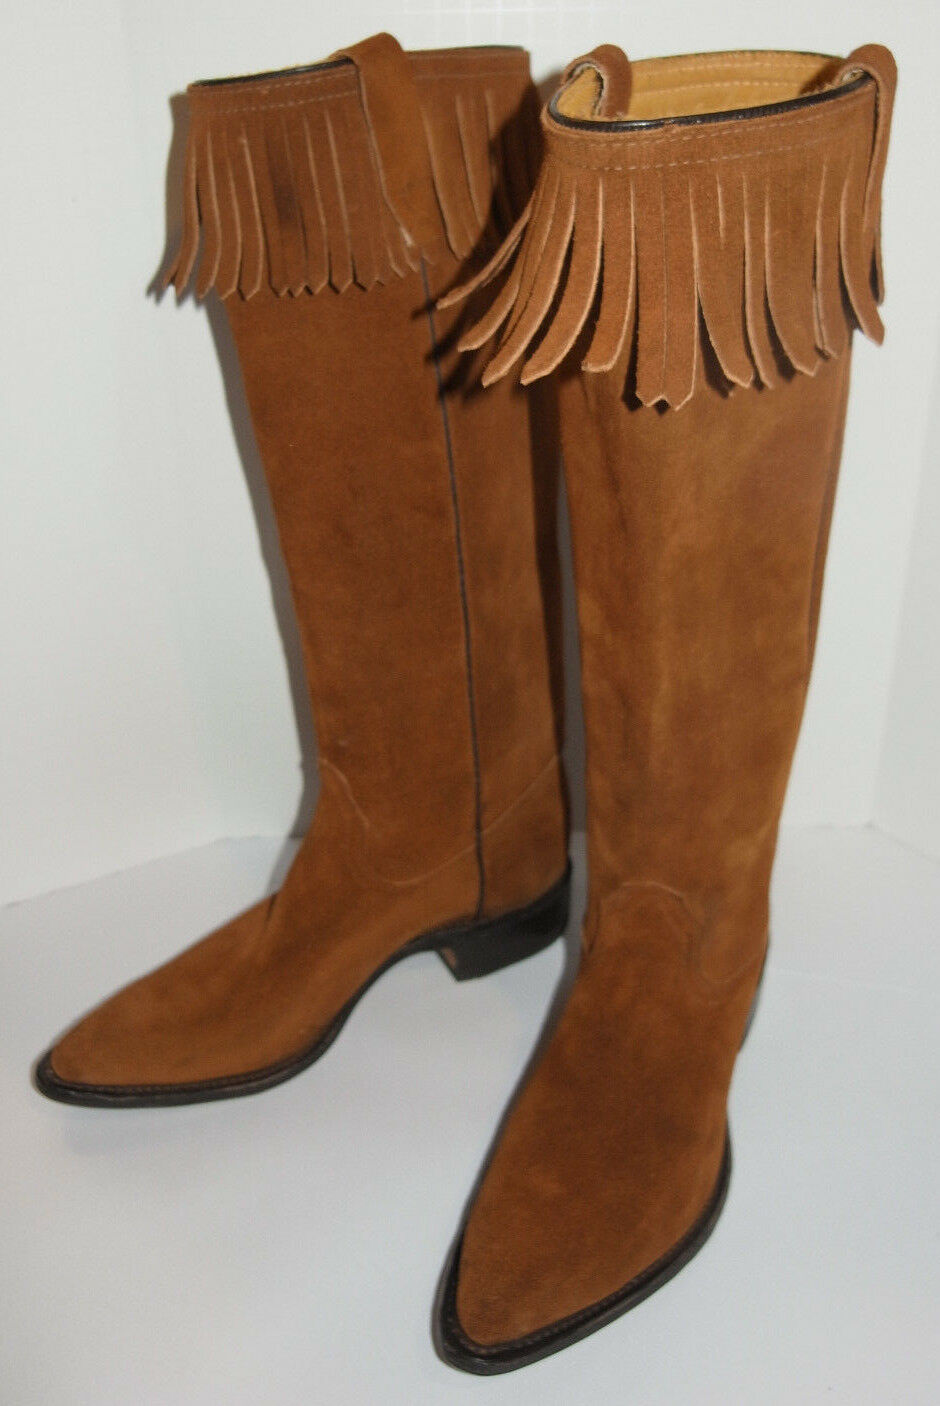 WOMEN'S UNUSED 1970s SUEDE LEATHER 15  BOOTS WITH FRINGES  NEW  MADE IN USA 5.5C